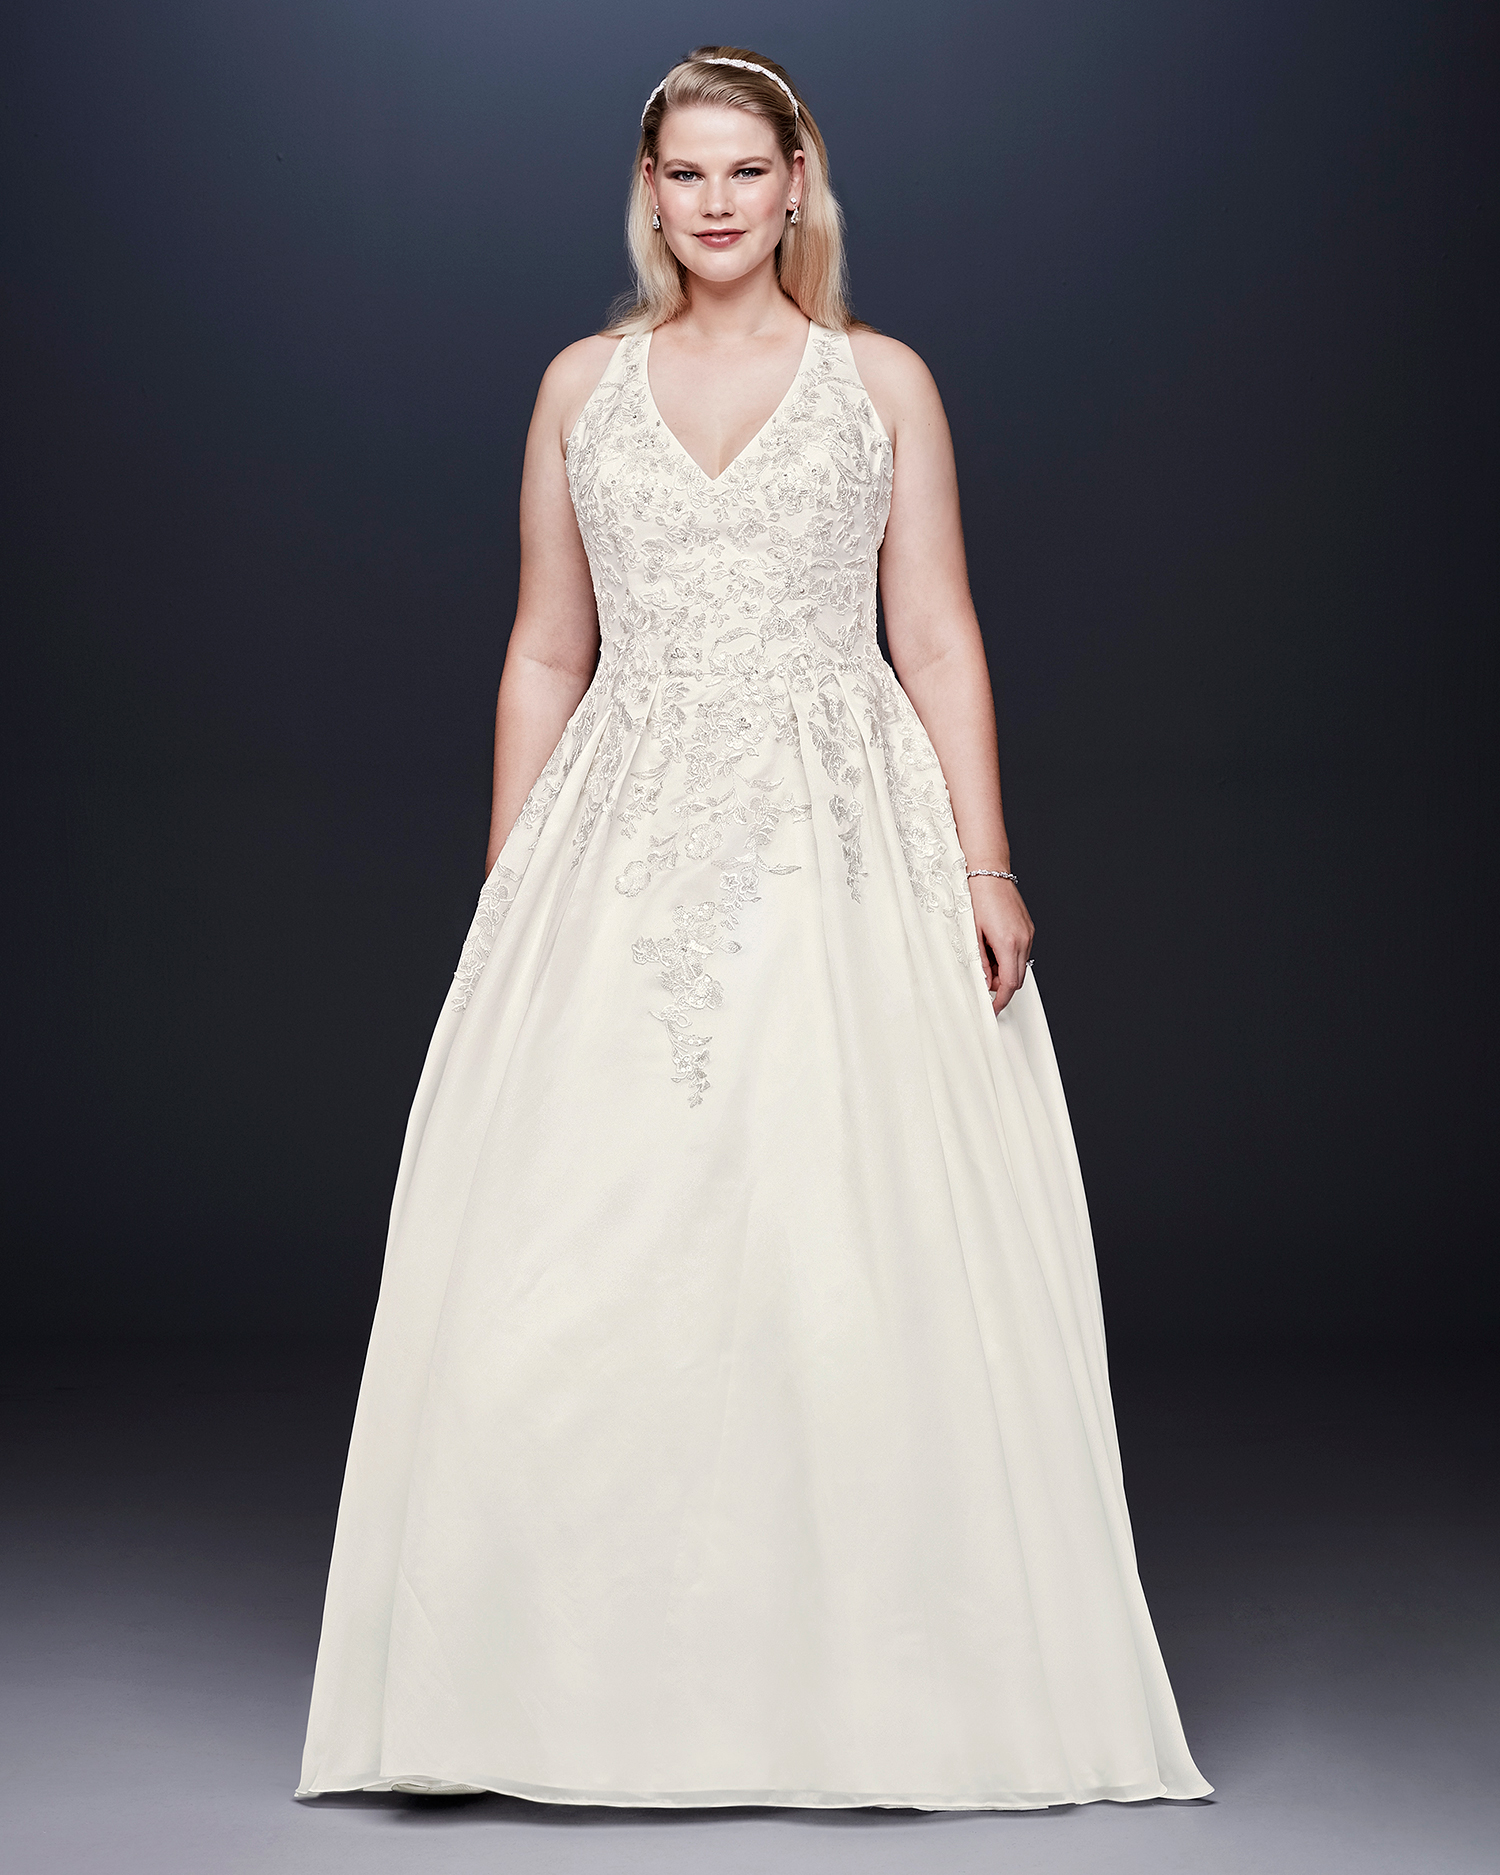 David's Bridal Fall 2019 Wedding Dress Collection